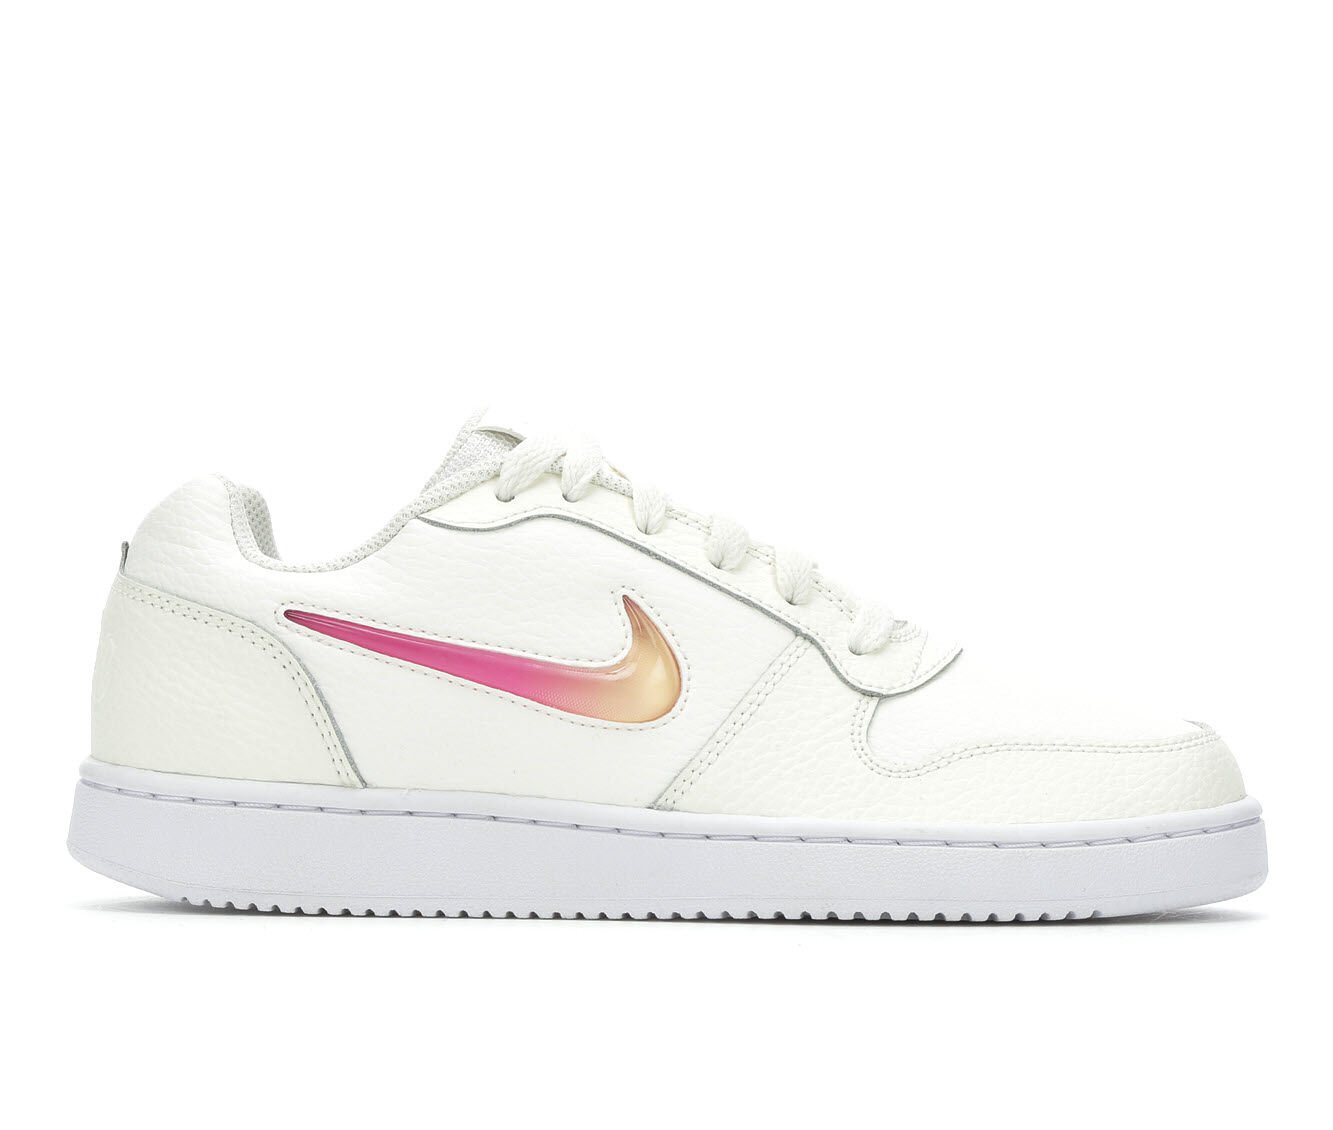 find authentic cheap Women's Nike Ebernon Low Premium Basketball Shoes White/Fuch/Org